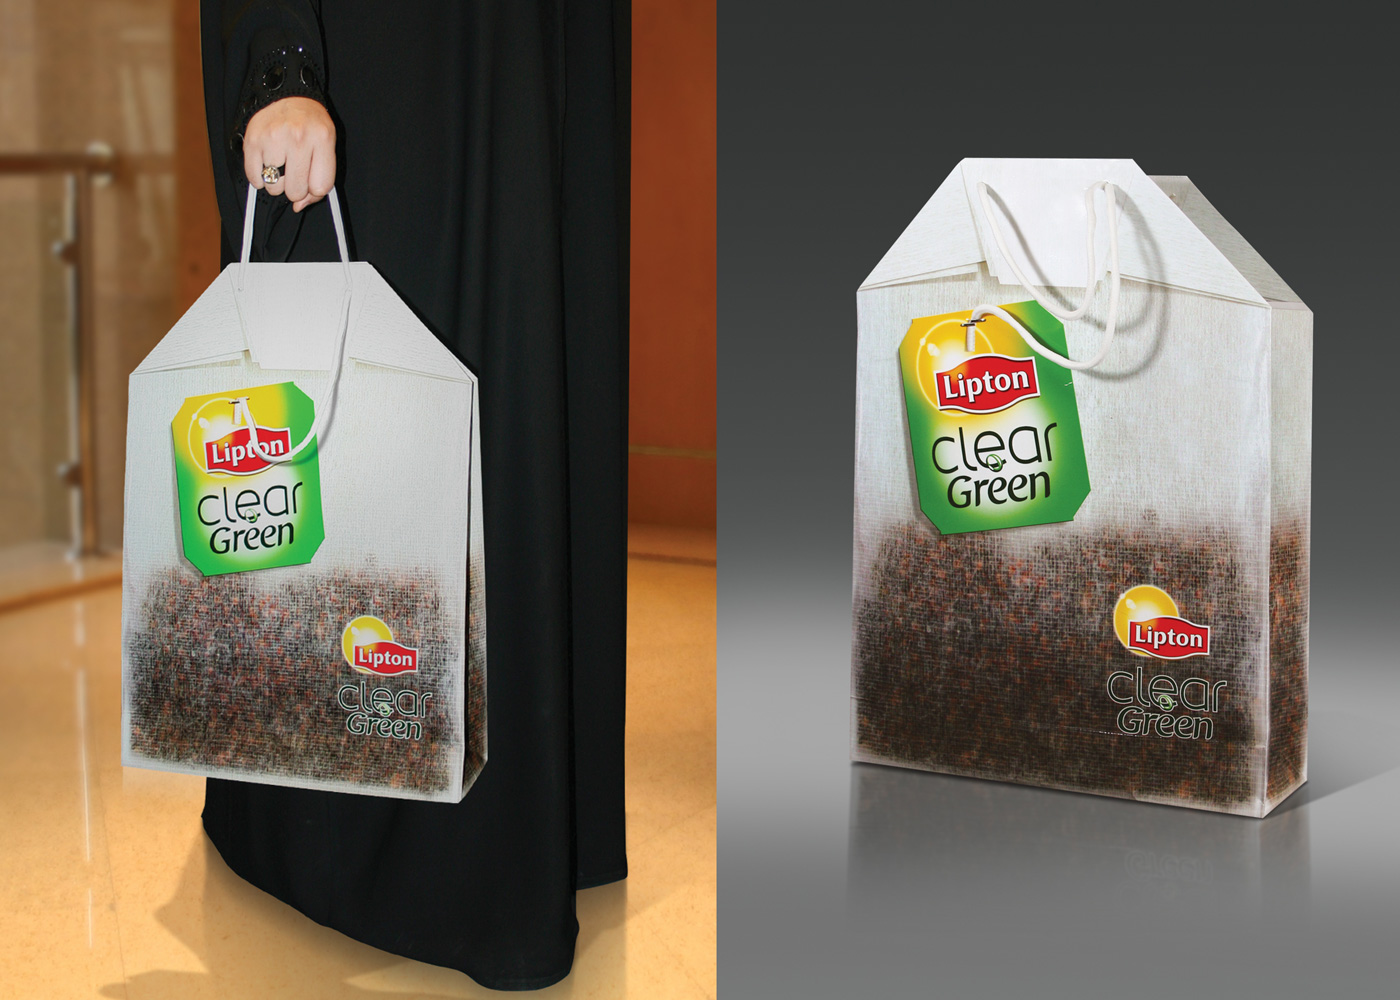 f6559dd30e5f7ce2e5fd2d21c2ad123b1 25 Creative Shopping Bag Advertisements